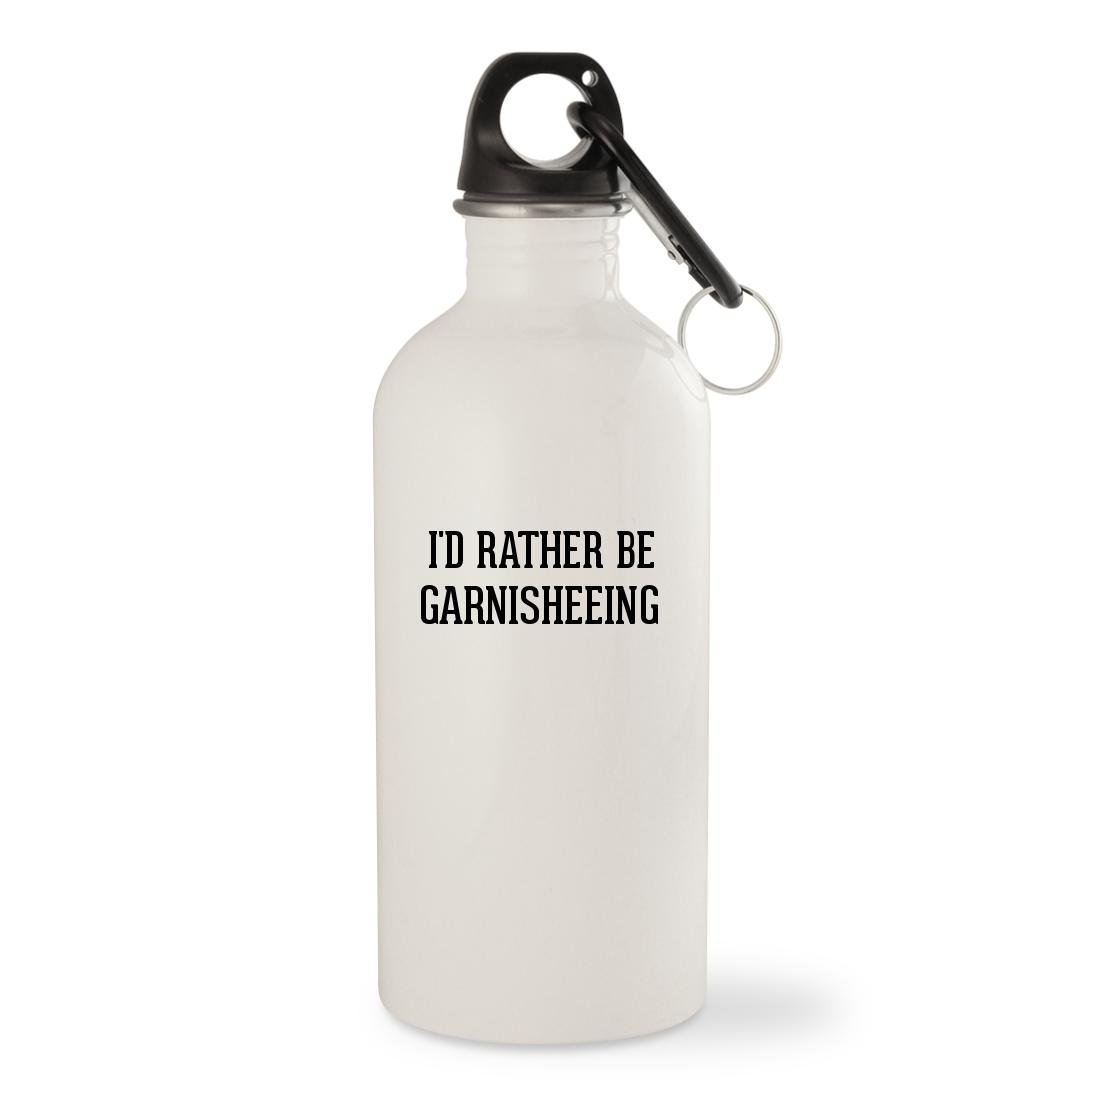 I'd Rather Be GARNISHEEING - White 20oz Stainless Steel Water Bottle with Carabiner